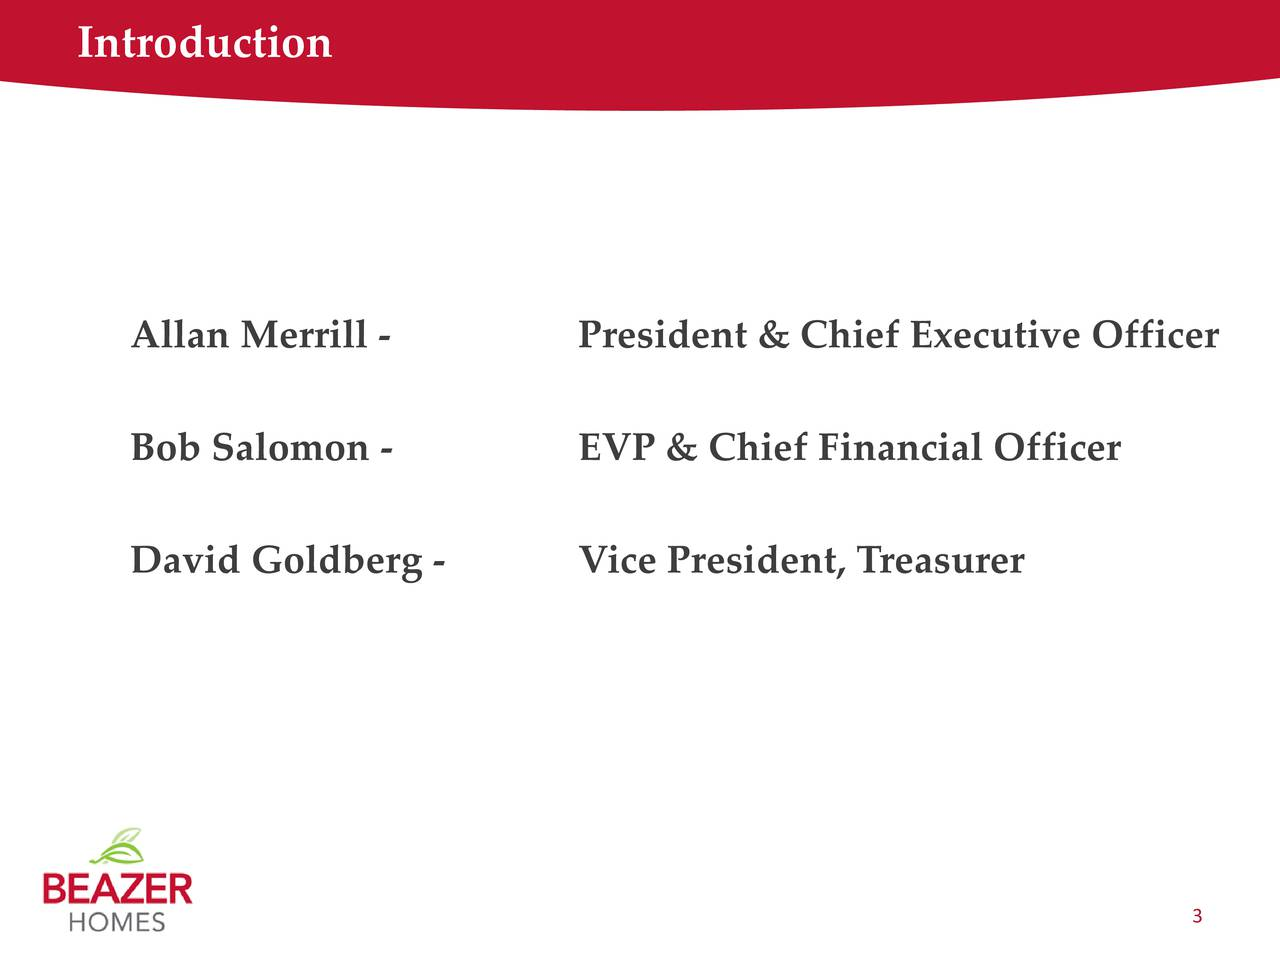 Allan Merrill - President & Chief Executive Officer Bob Salomon - EVP & Chief Financial Officer David Goldberg - Vice President, Treasurer 3